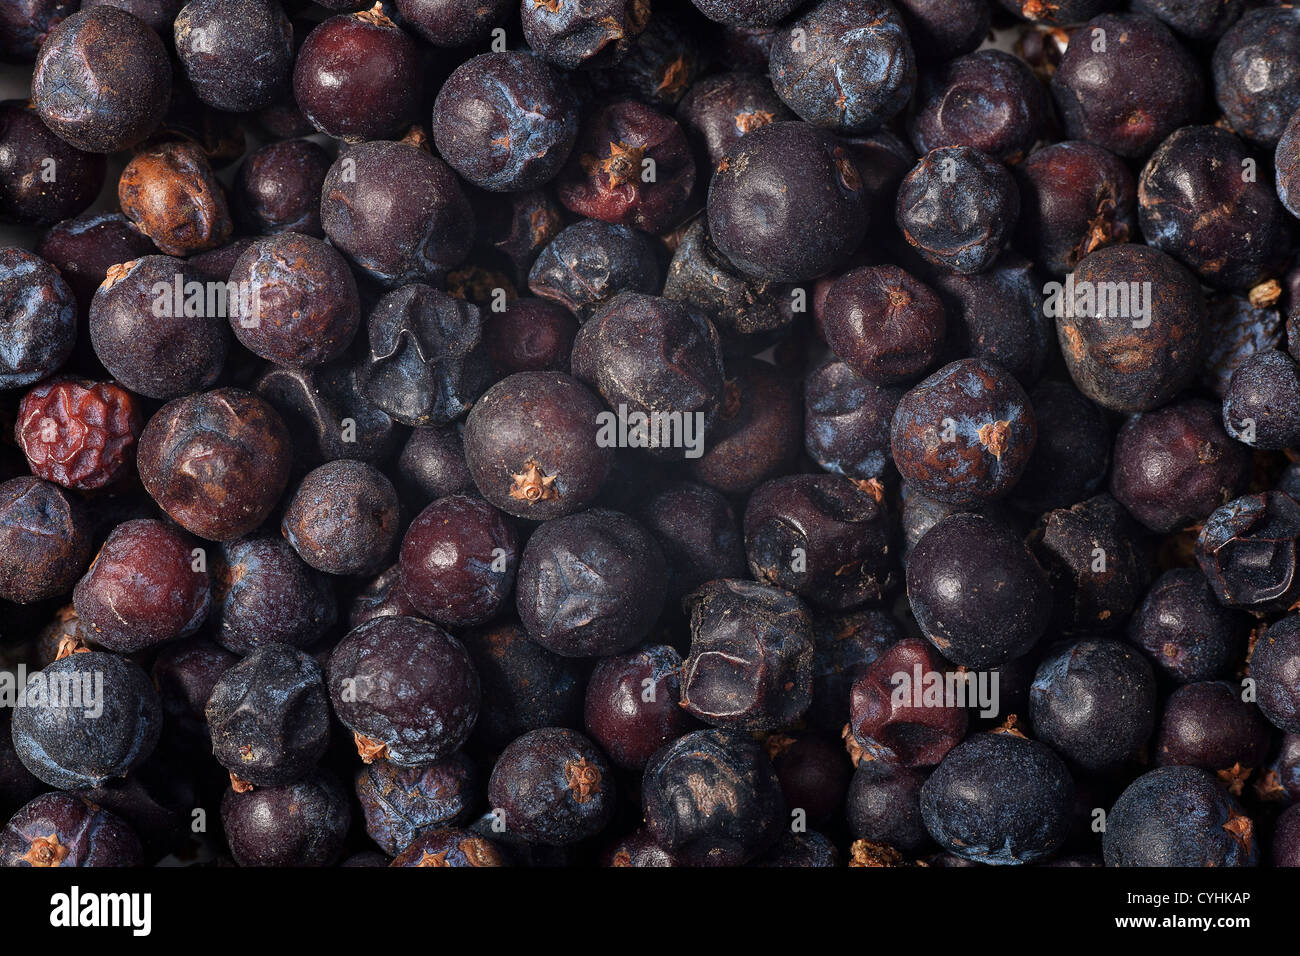 dried juniper berry closeup background - Stock Image